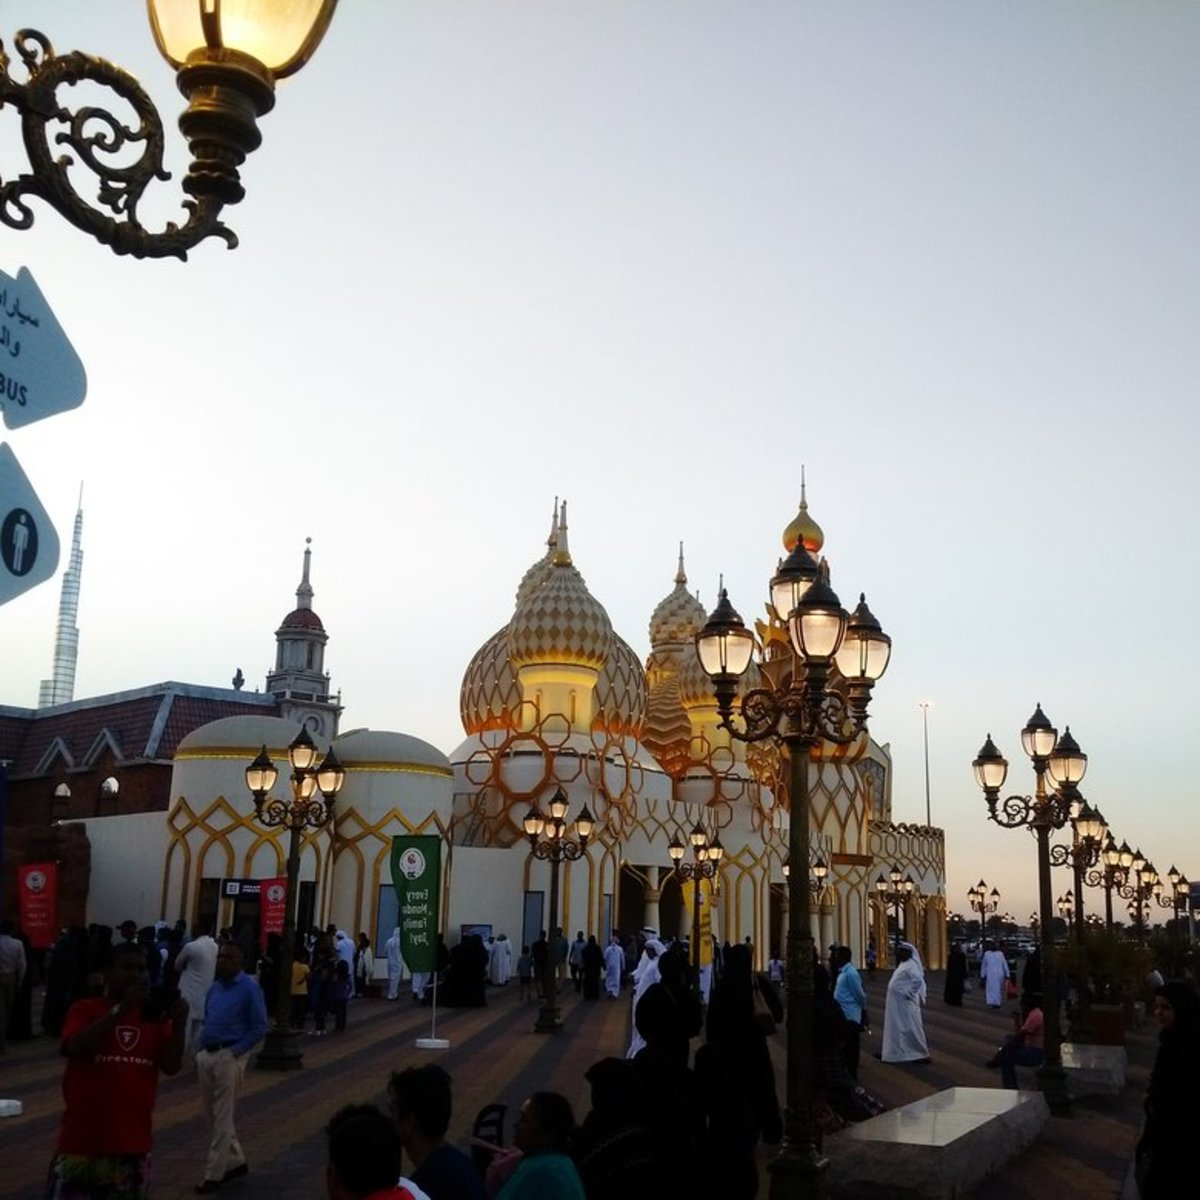 Visiting the Global Village in Dubai